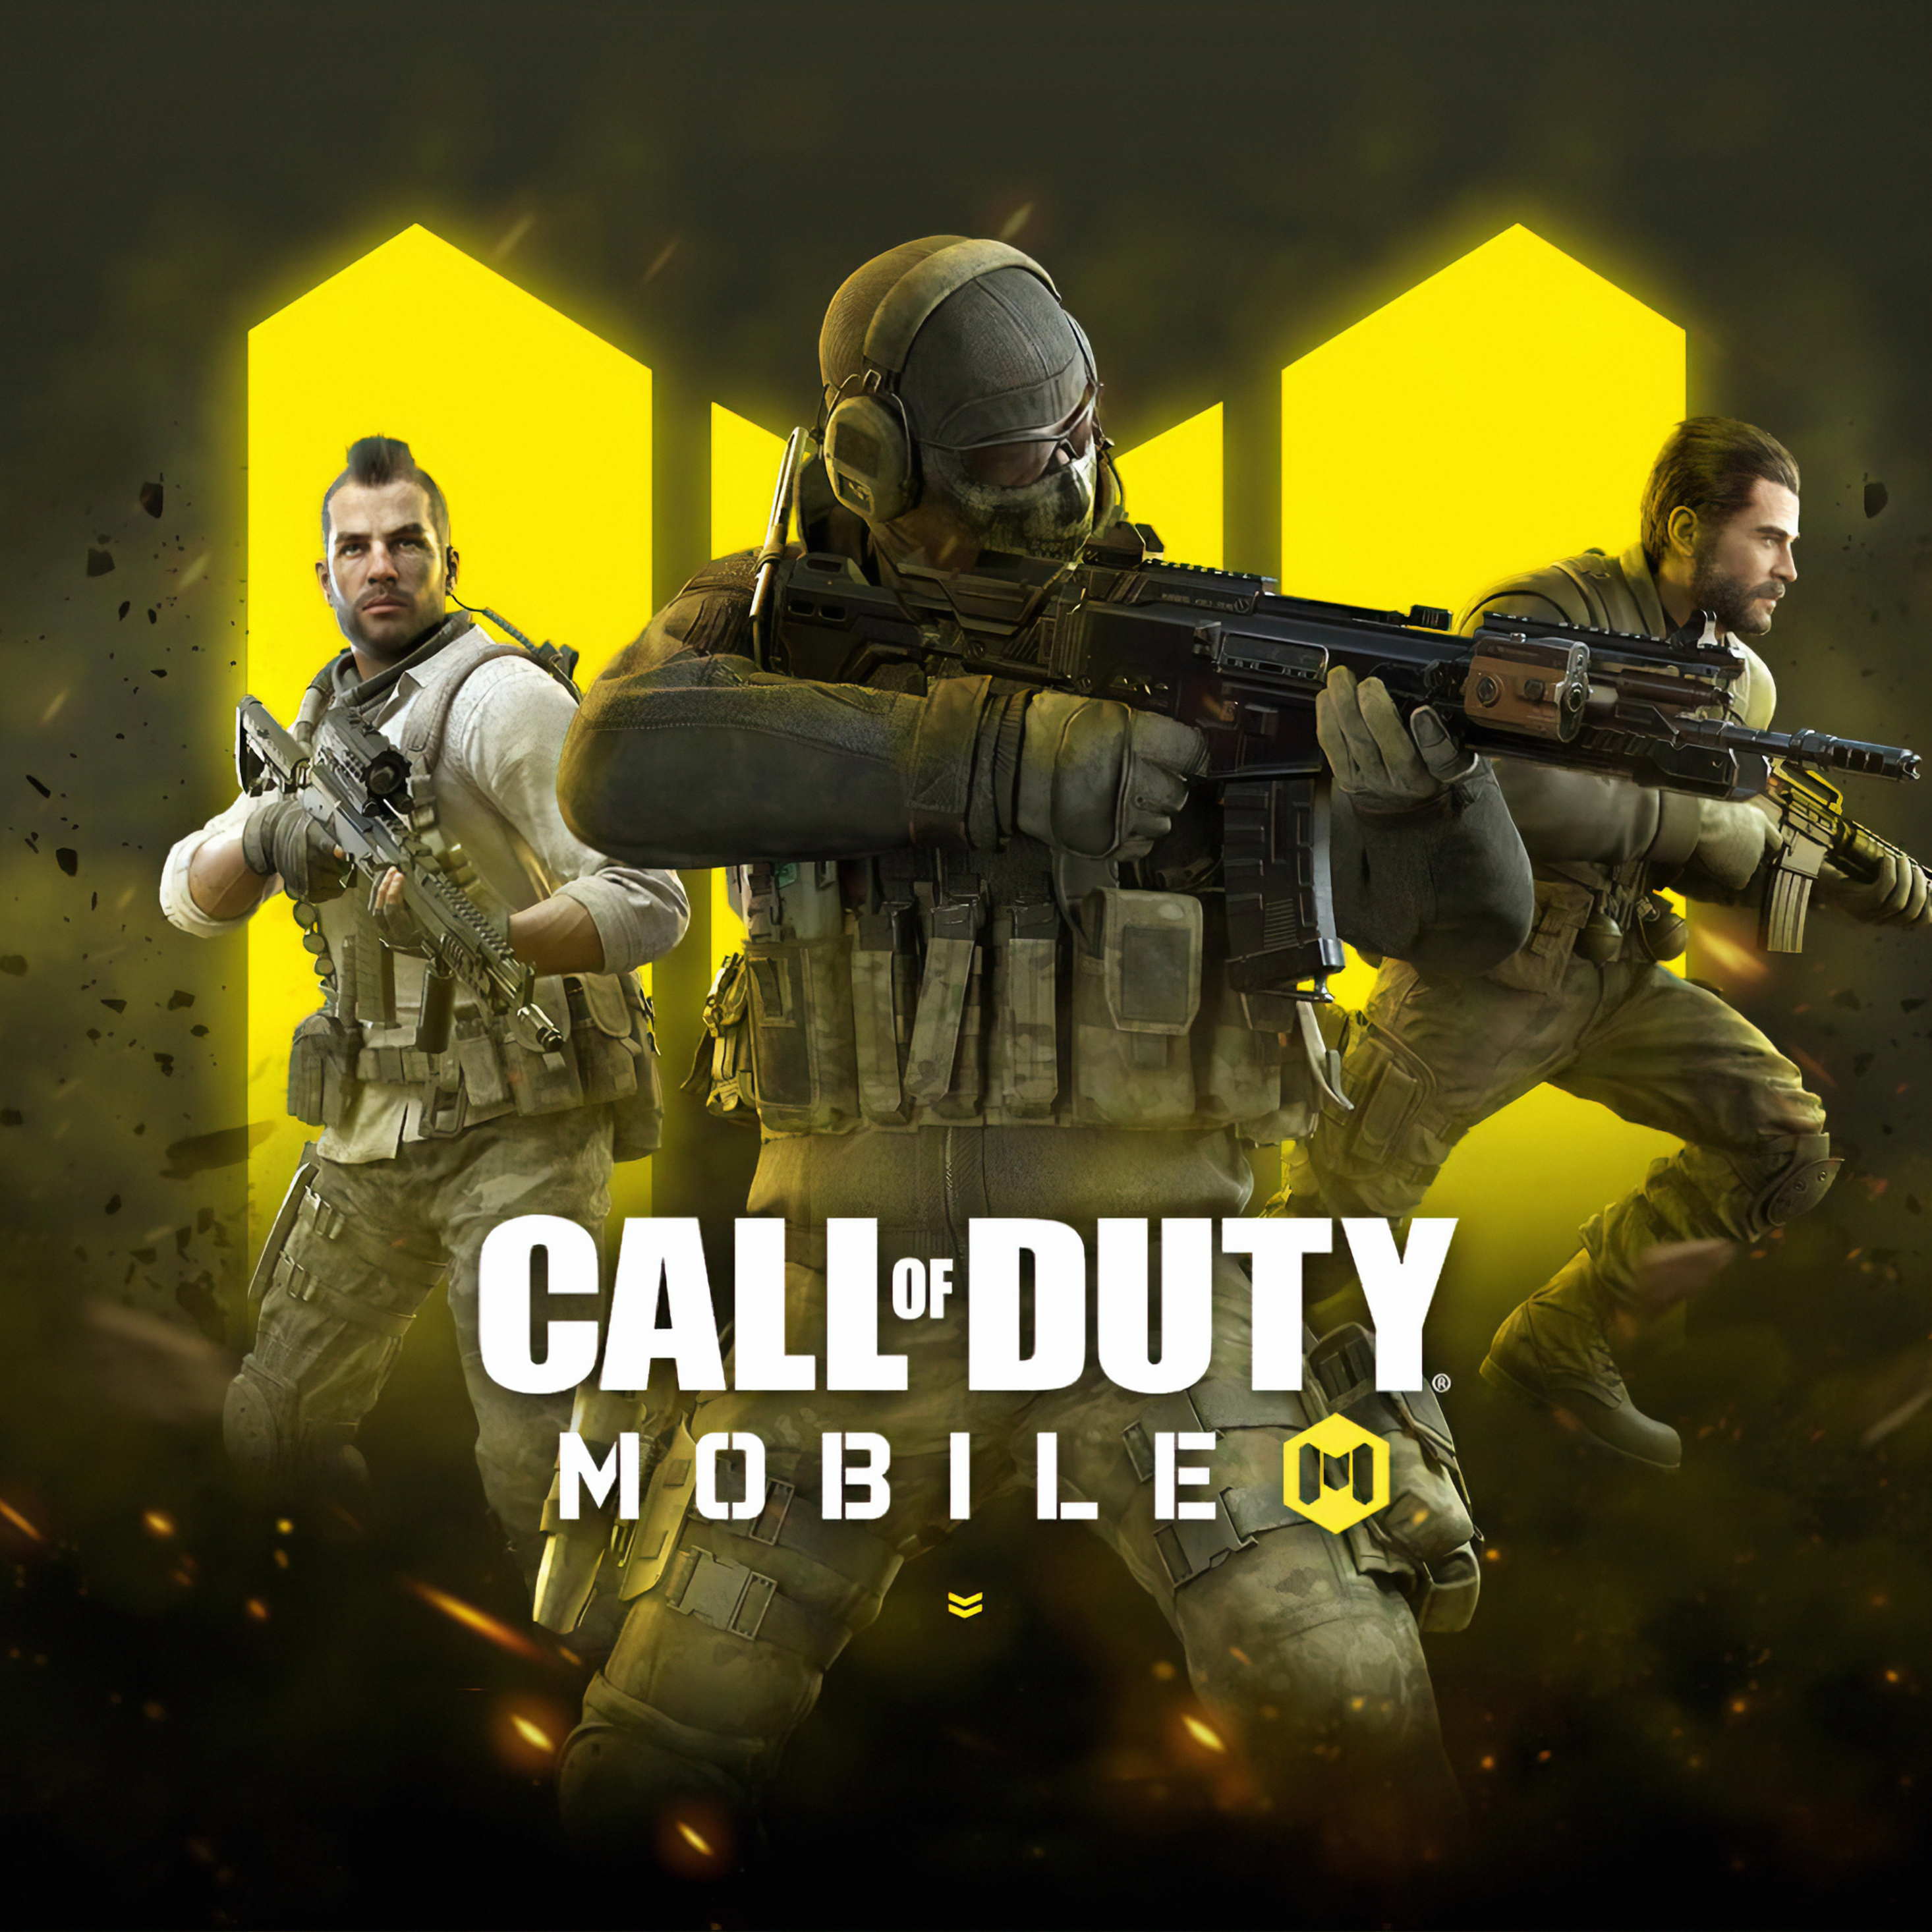 2932x2932 Call Of Duty Mobile 4k 2019 Ipad Pro Retina Display Hd